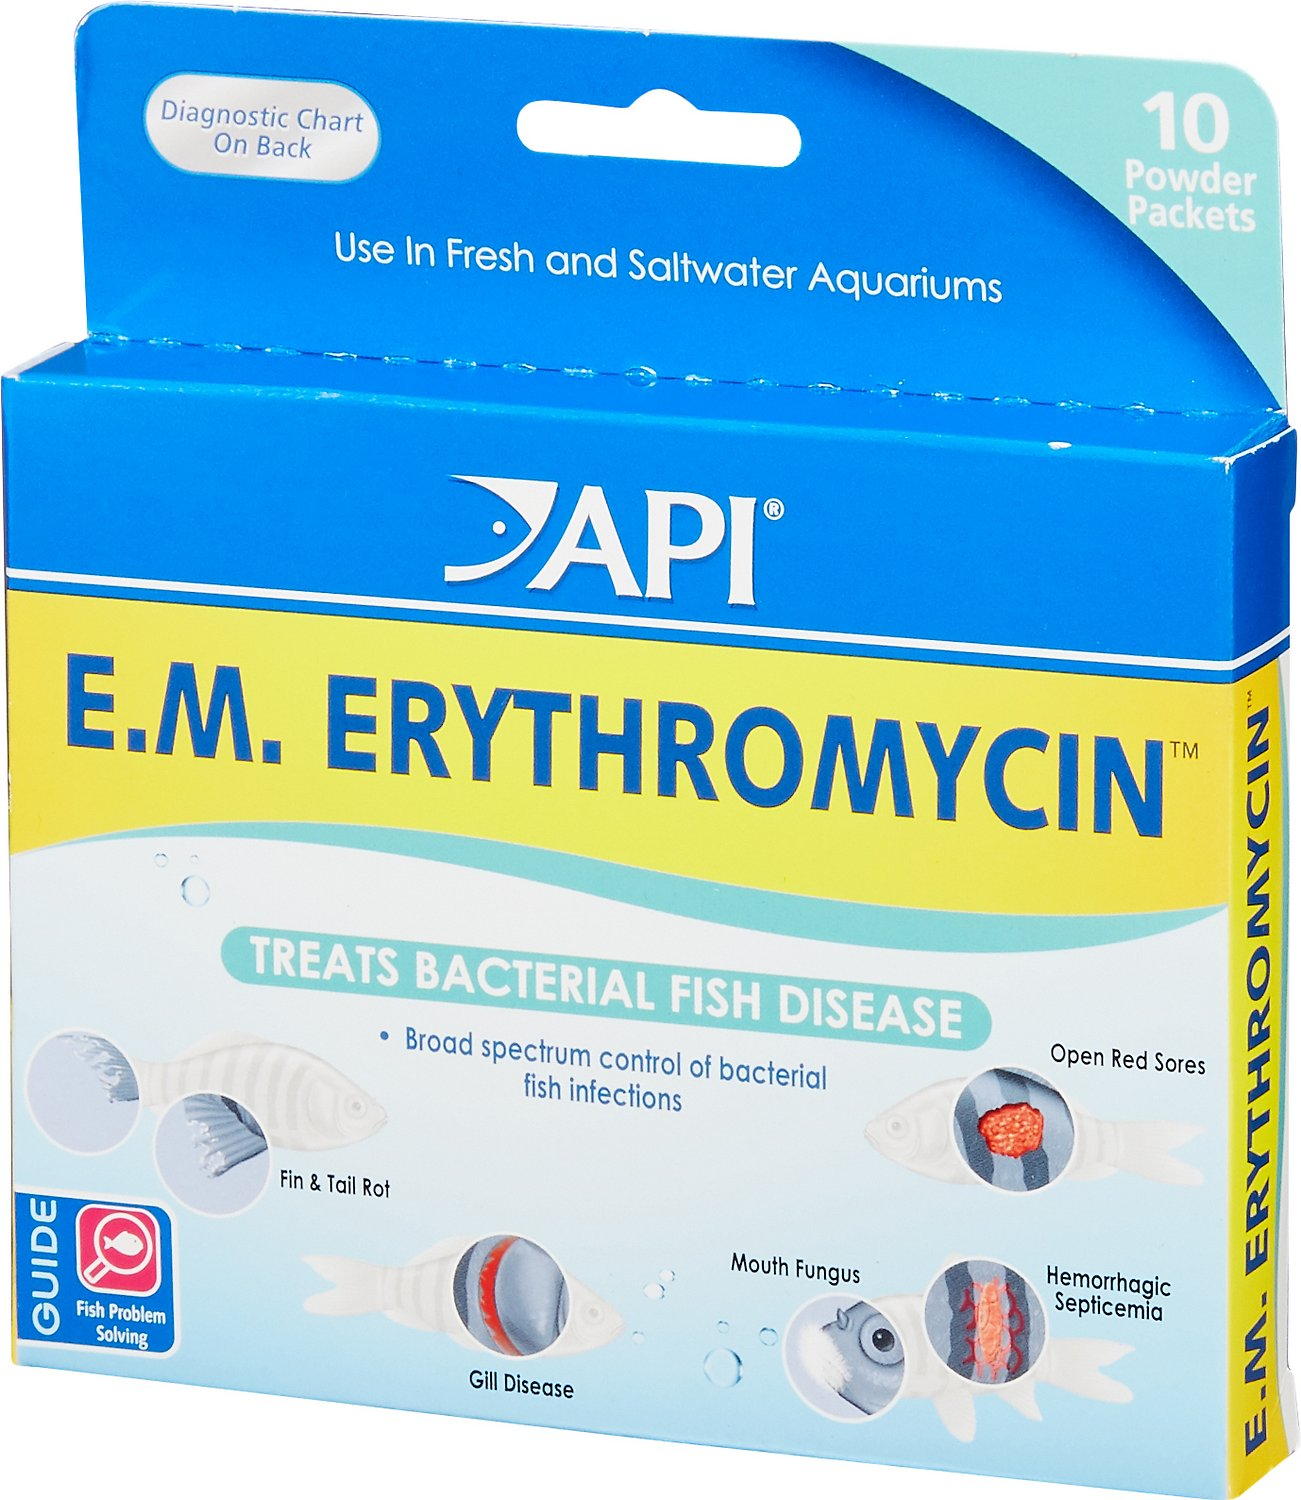 API E.M. Erythromycin Freshwater Fish Bacterial Disease Medication, 10 count Image